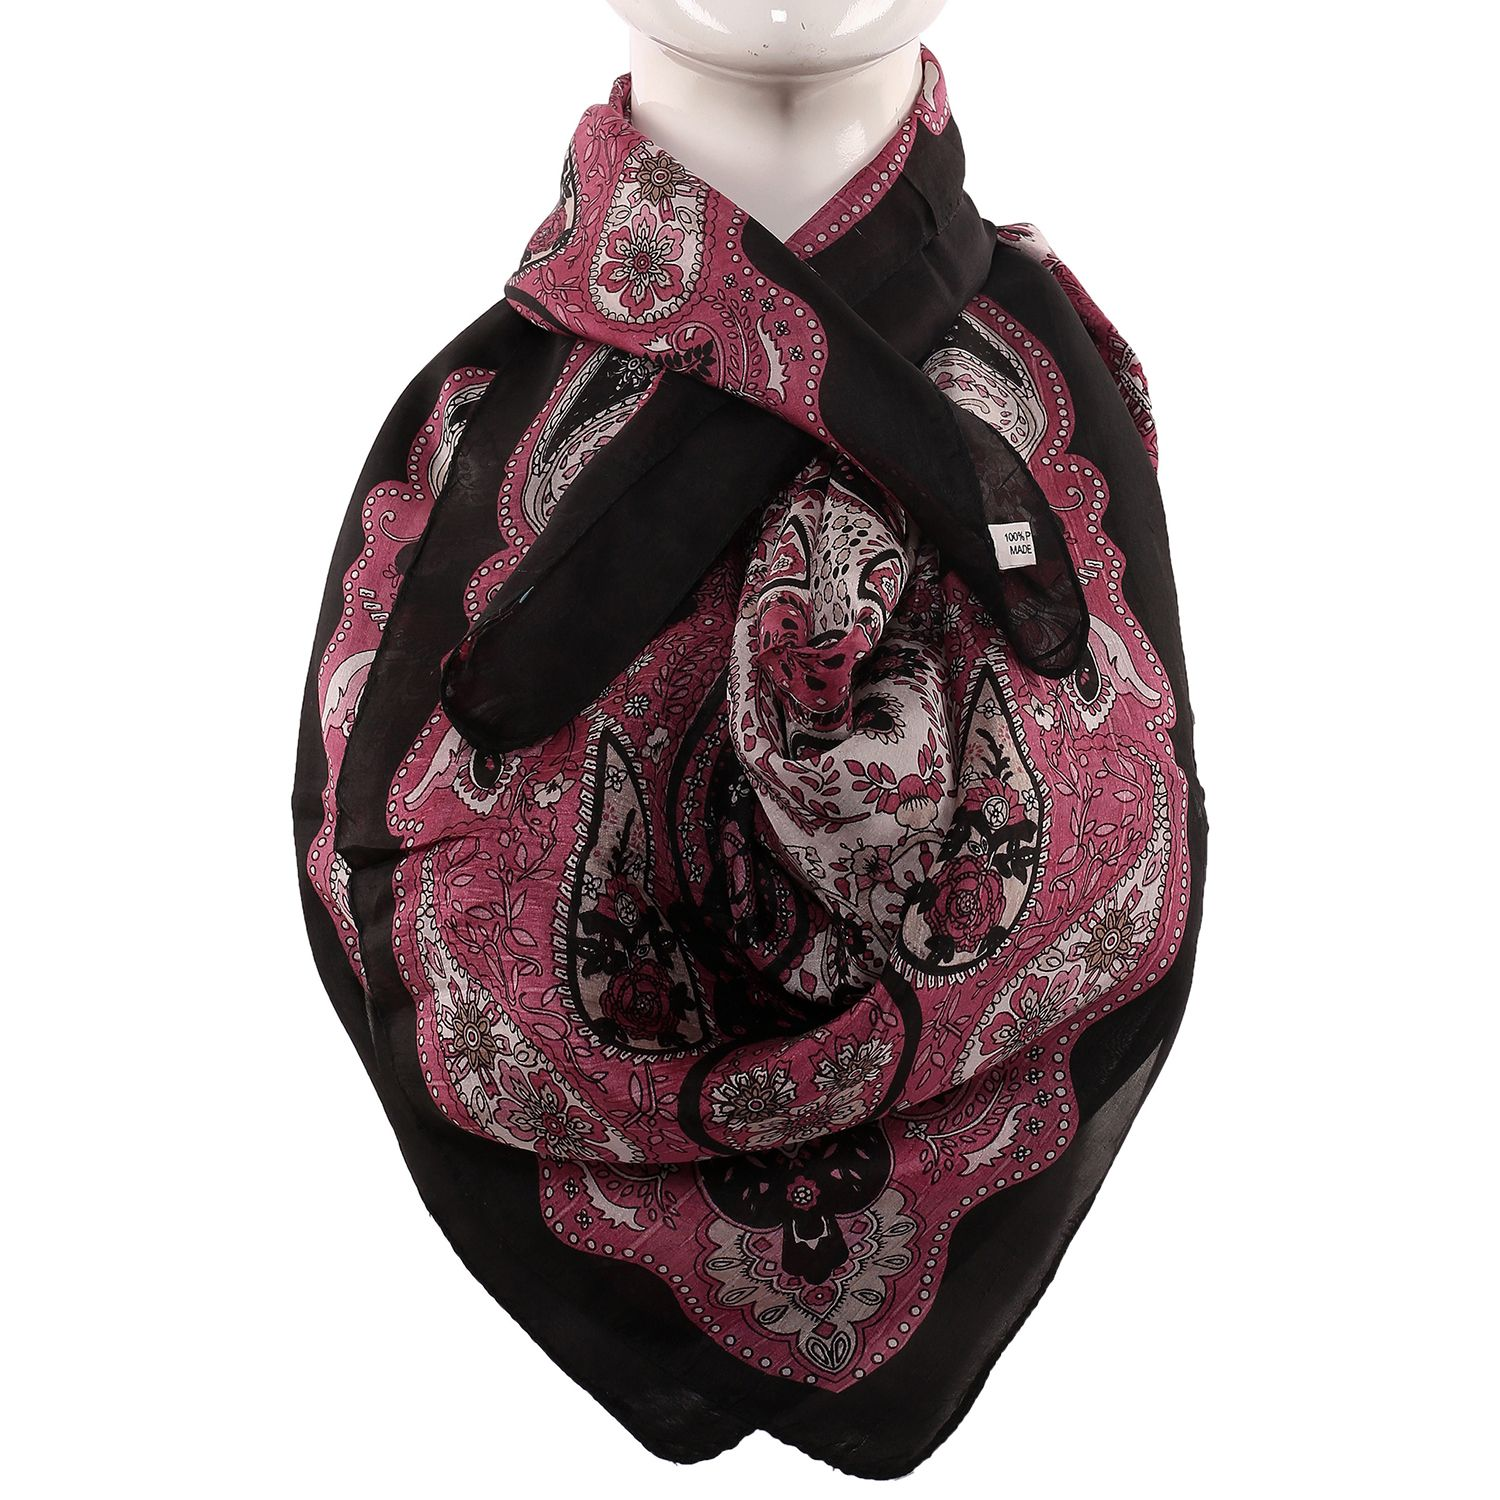 Silk Scarf Black Border Rangoli Print With Floral